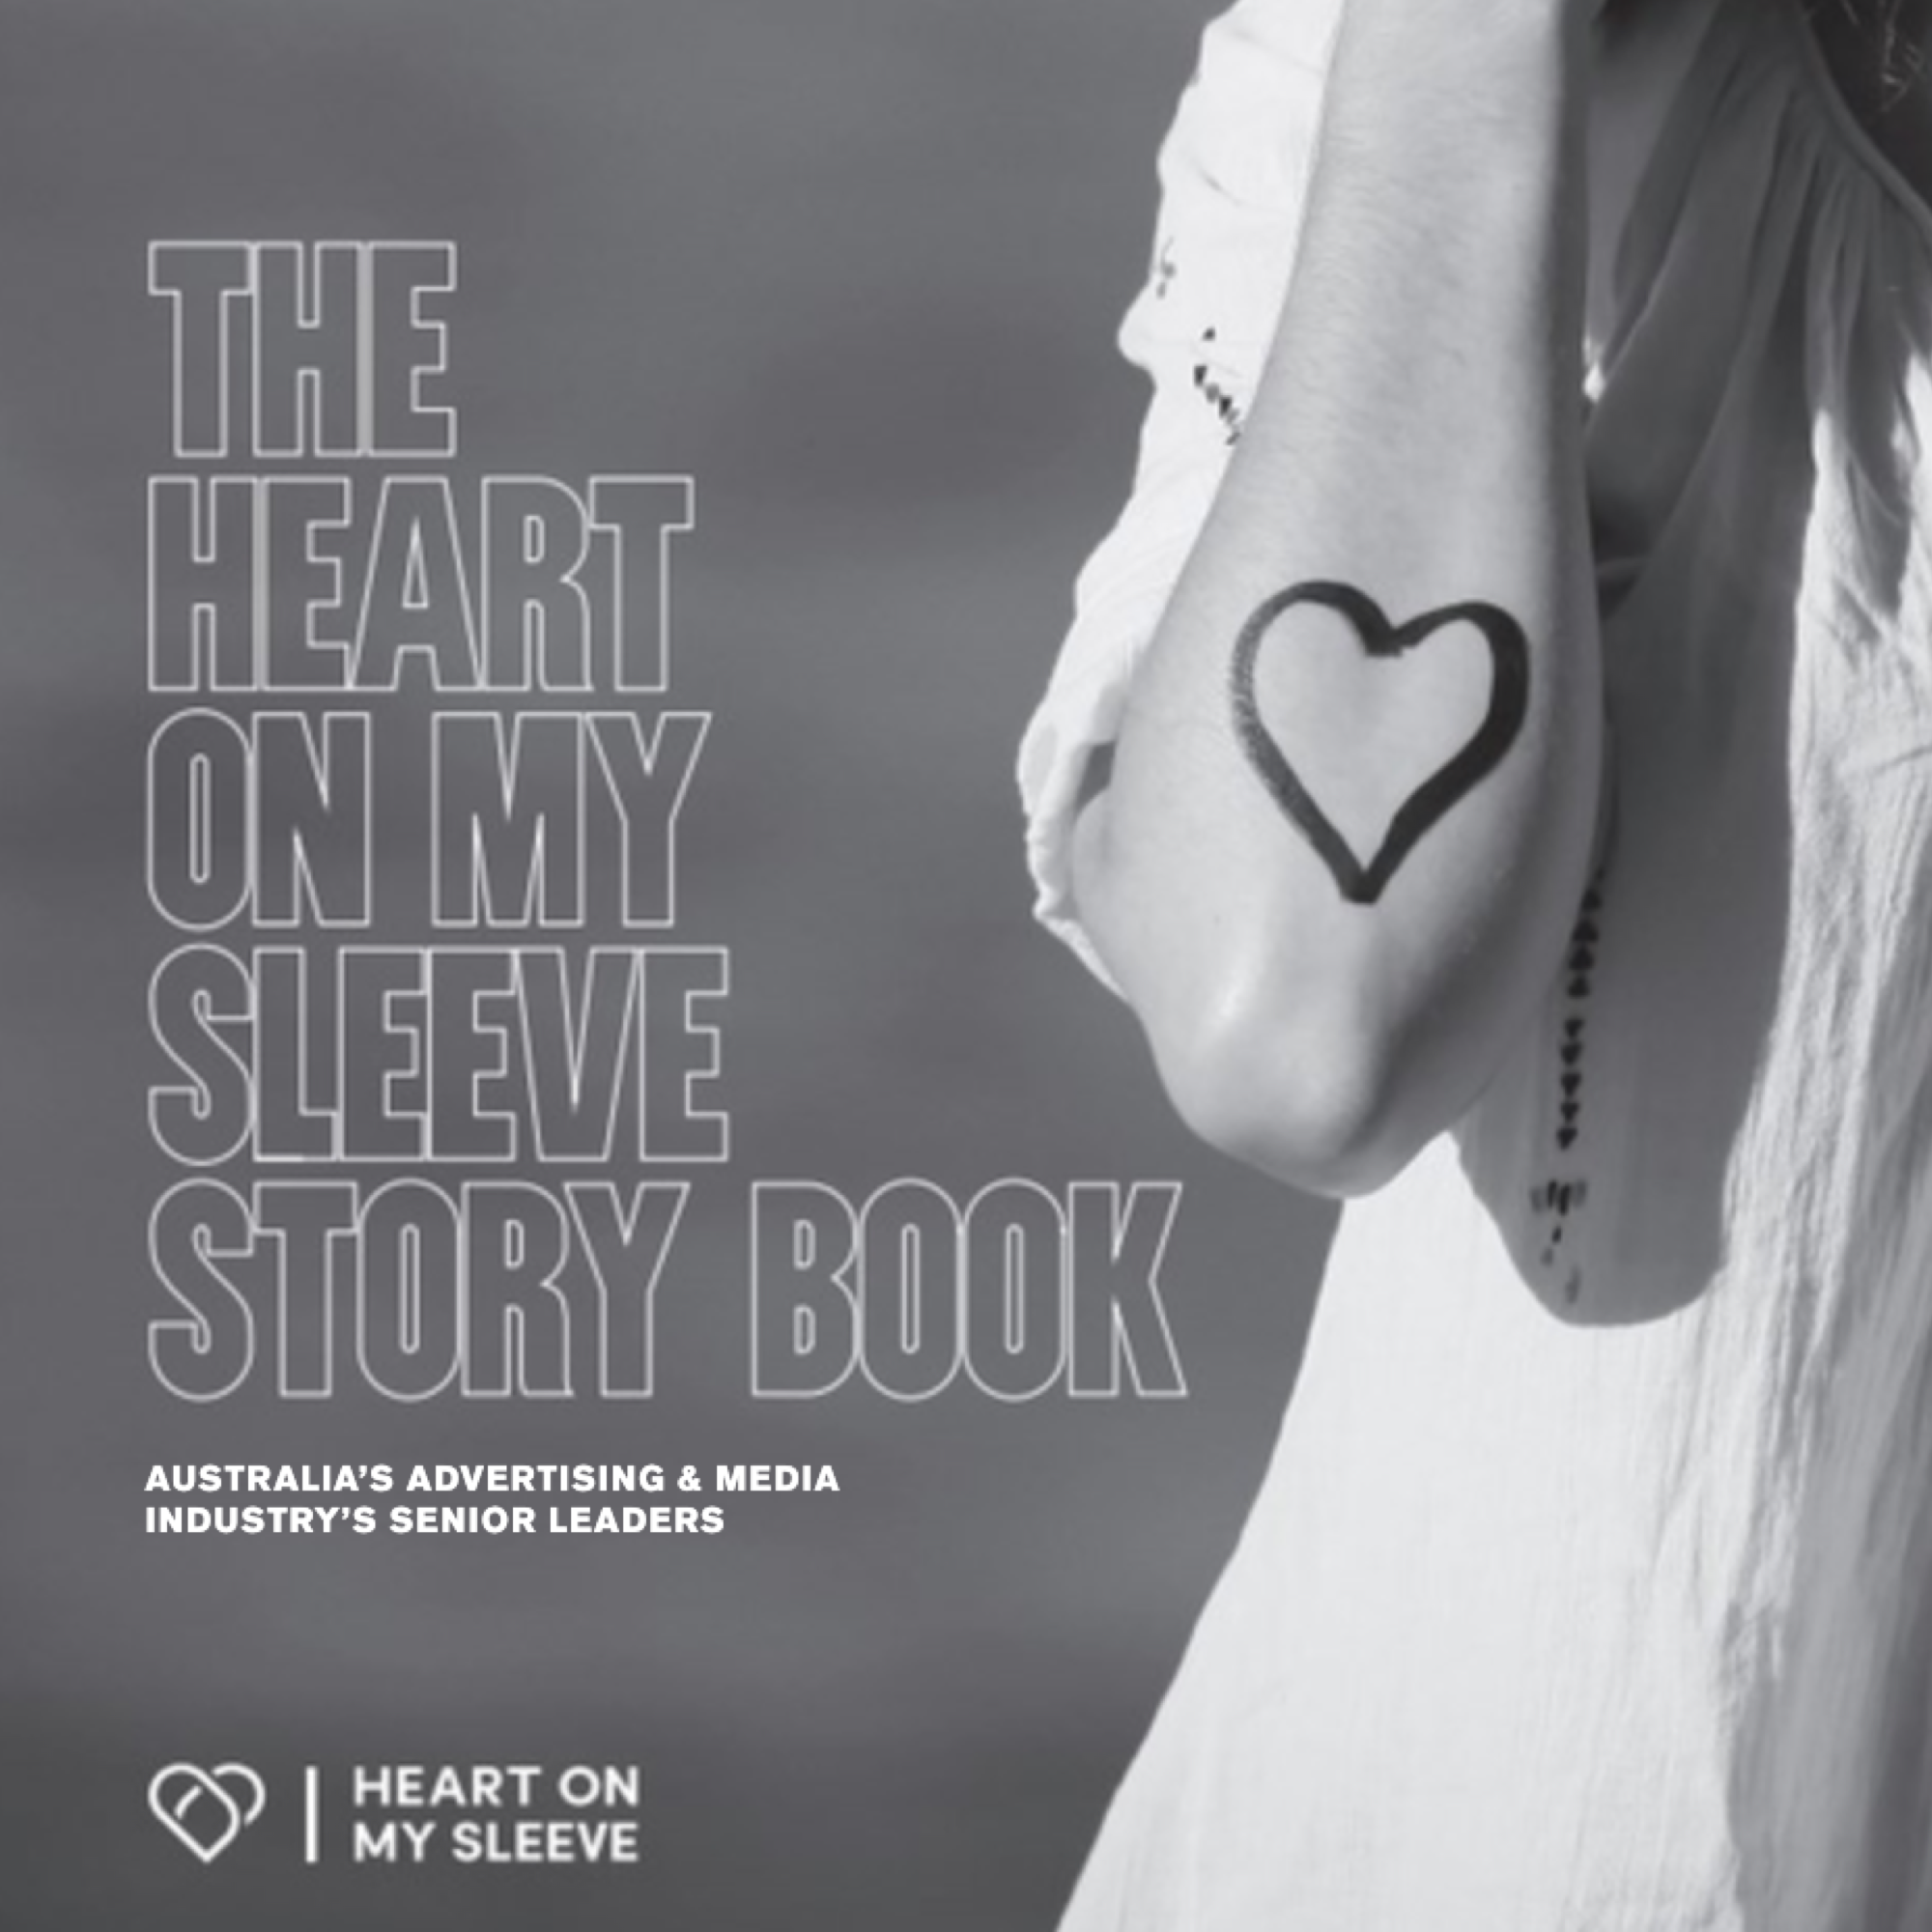 Mentally Healthy Change Group creates book to share stories and experiences with the industry -